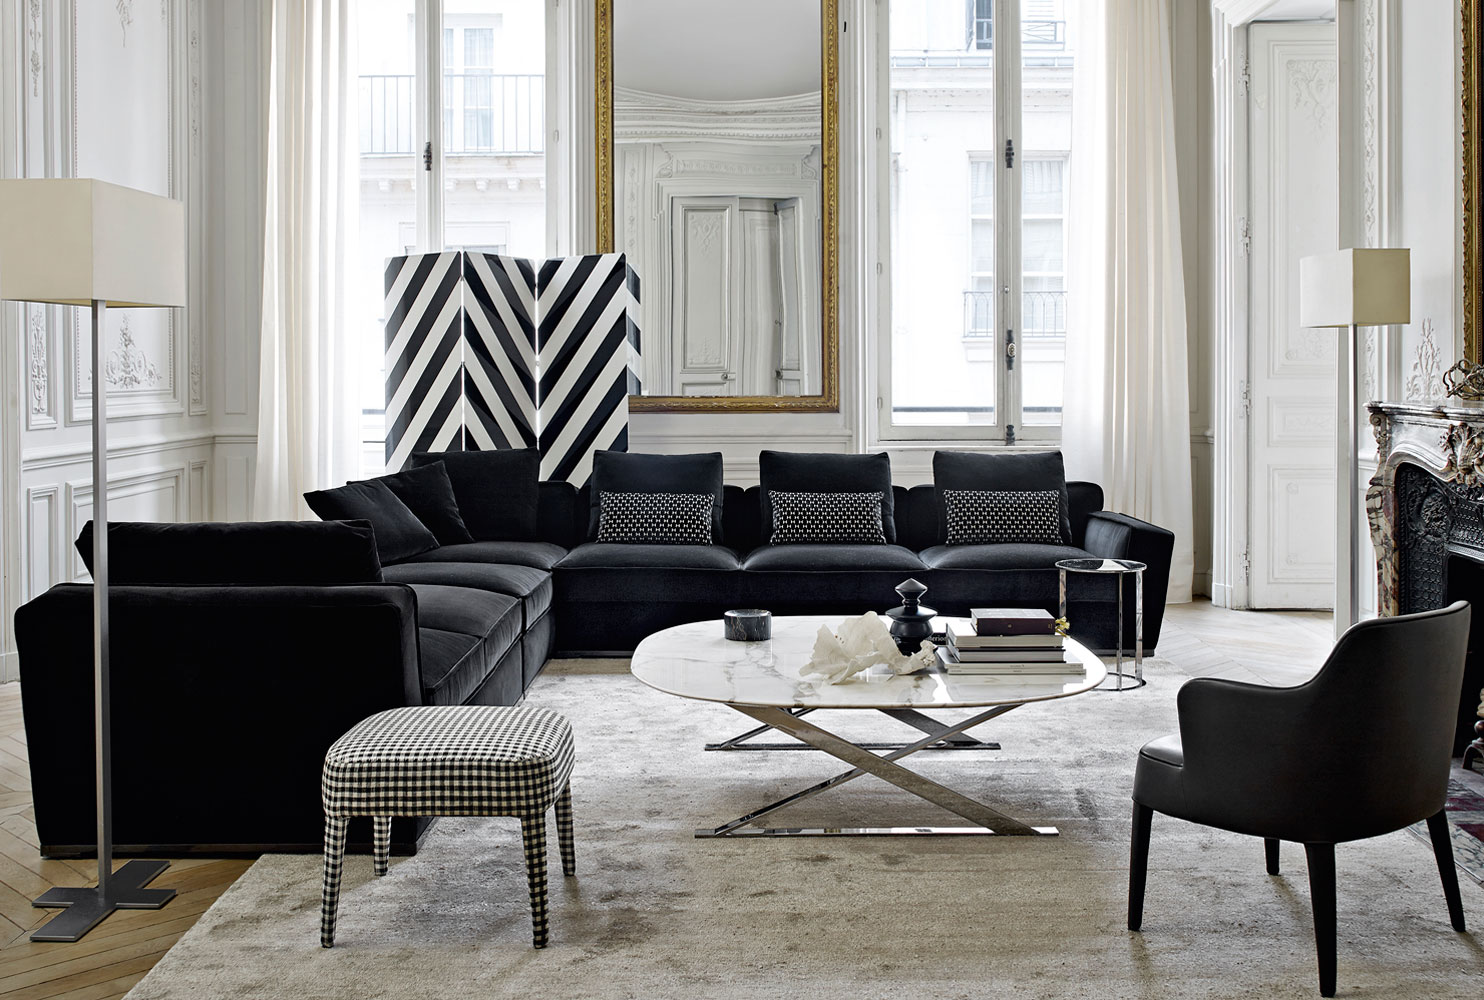 maxalto b b italia solatium sofa buy from campbell watson uk. Black Bedroom Furniture Sets. Home Design Ideas